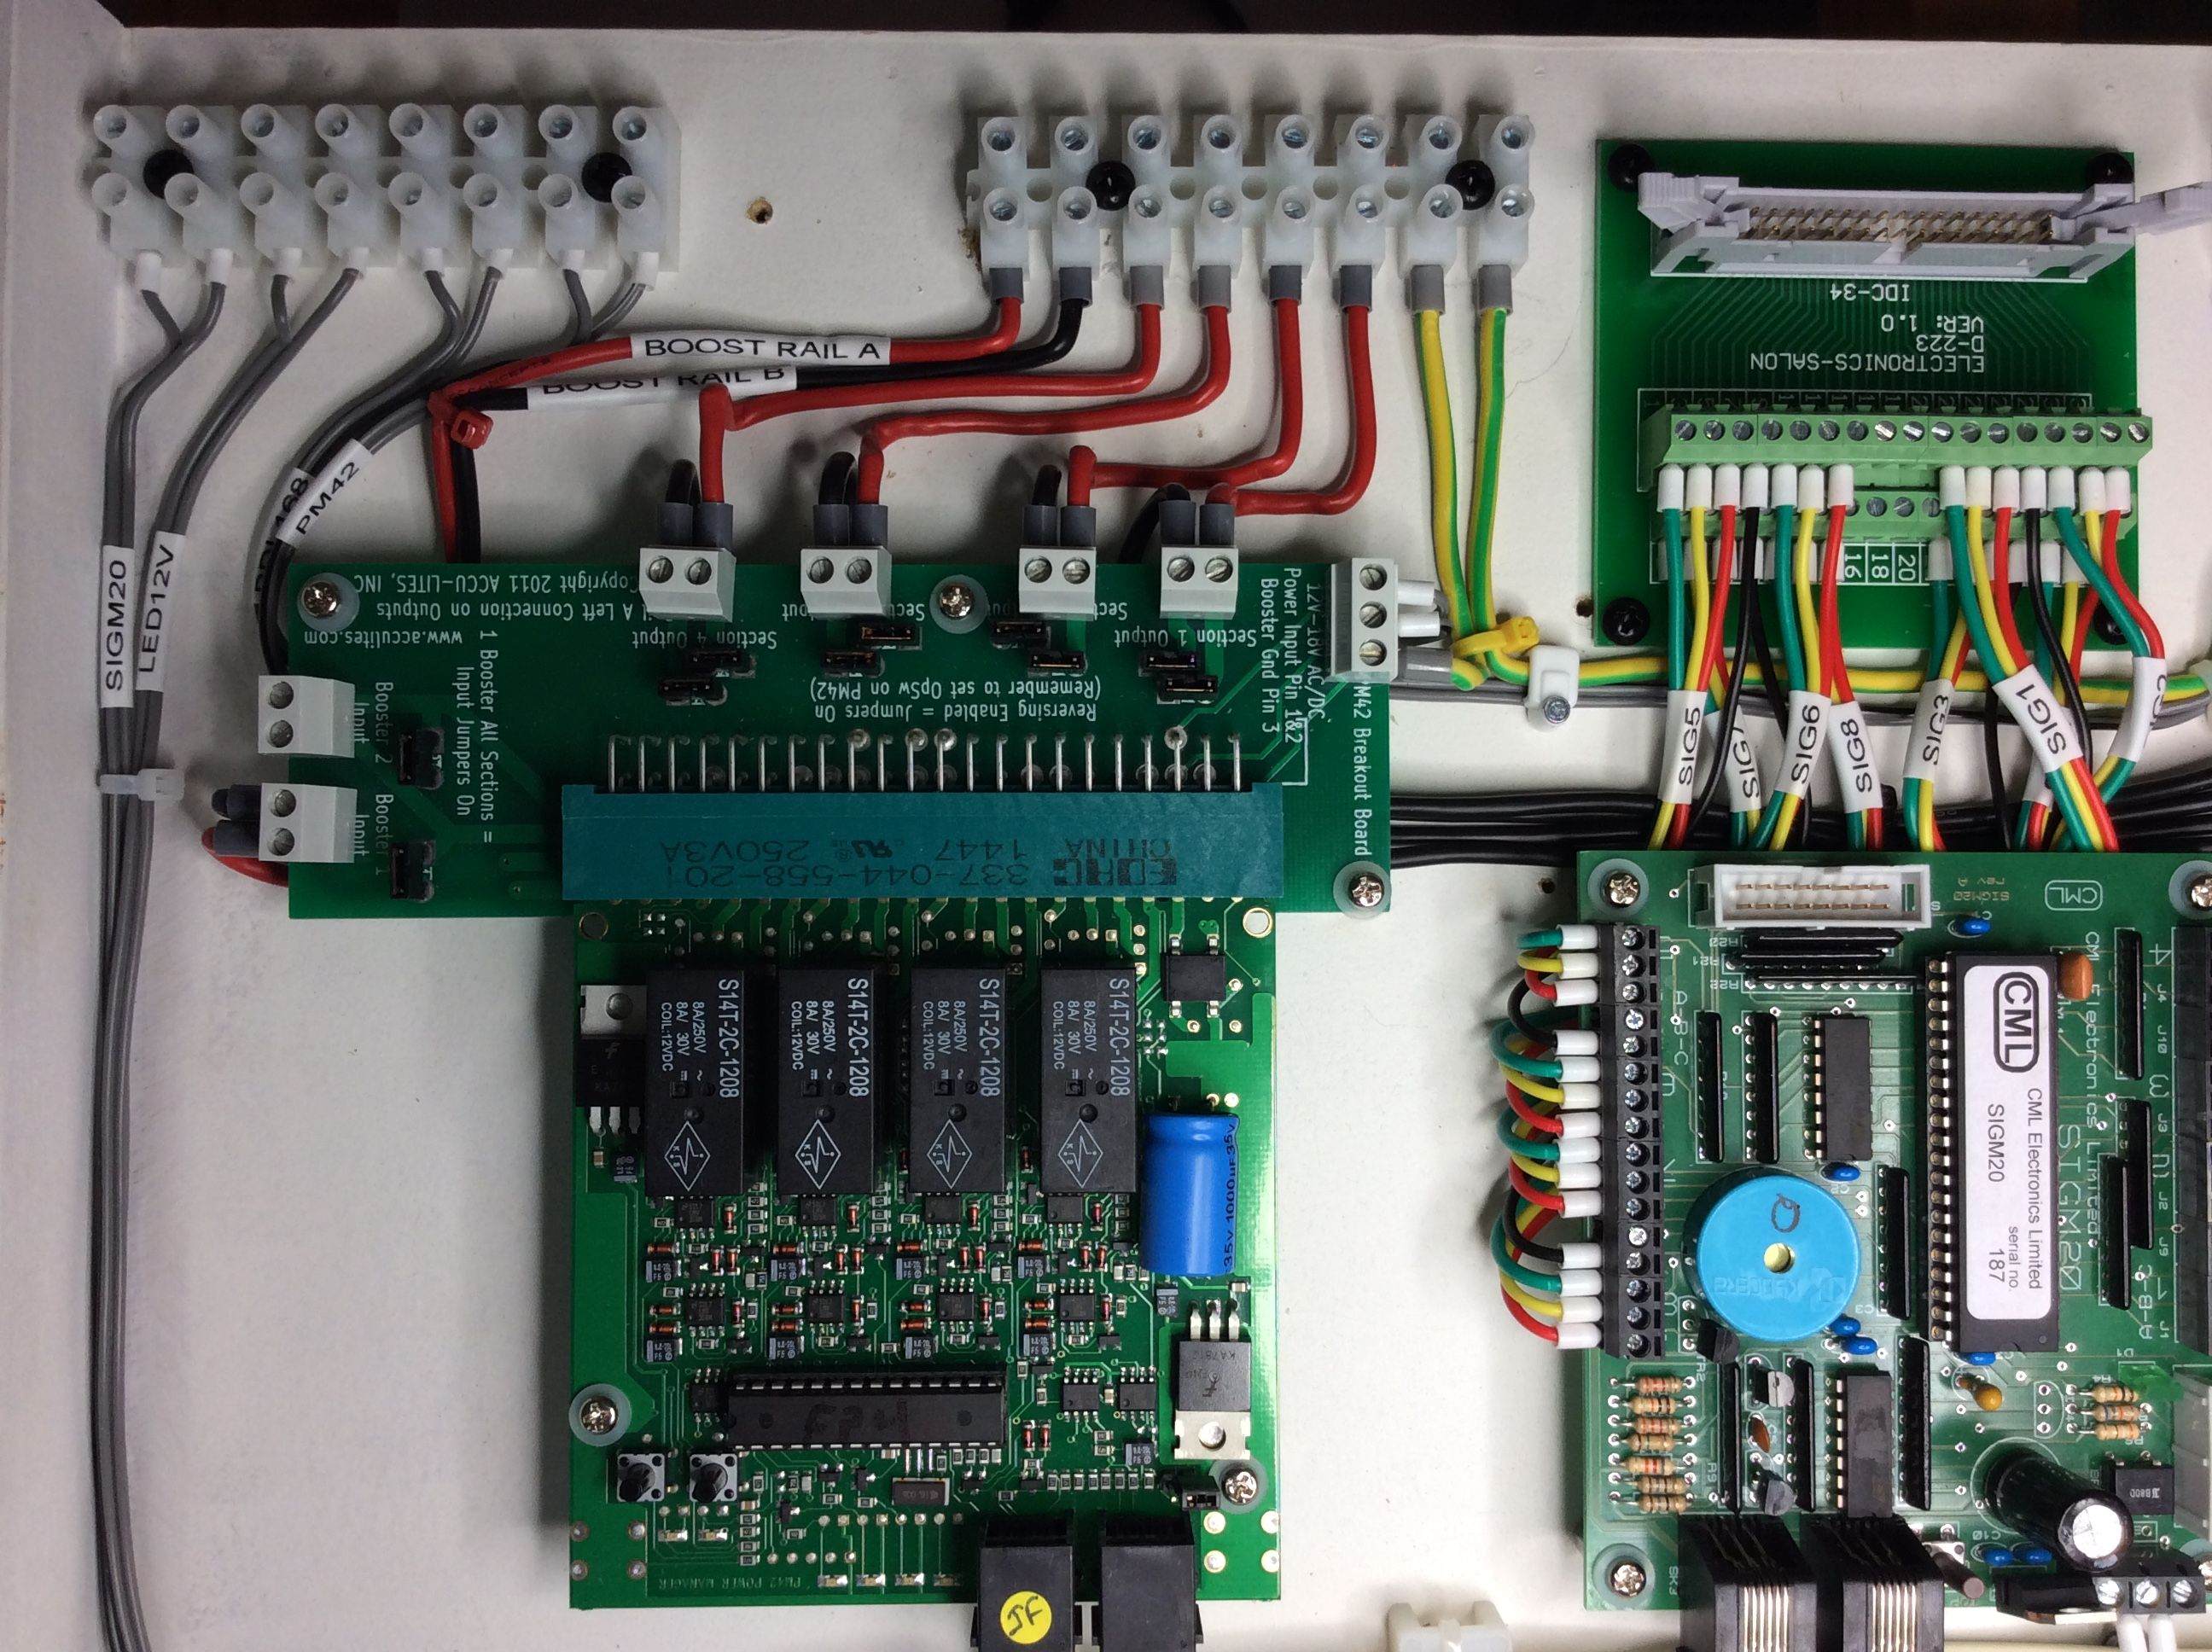 digitrax pm42 power manager board digitrax dcc model. Black Bedroom Furniture Sets. Home Design Ideas